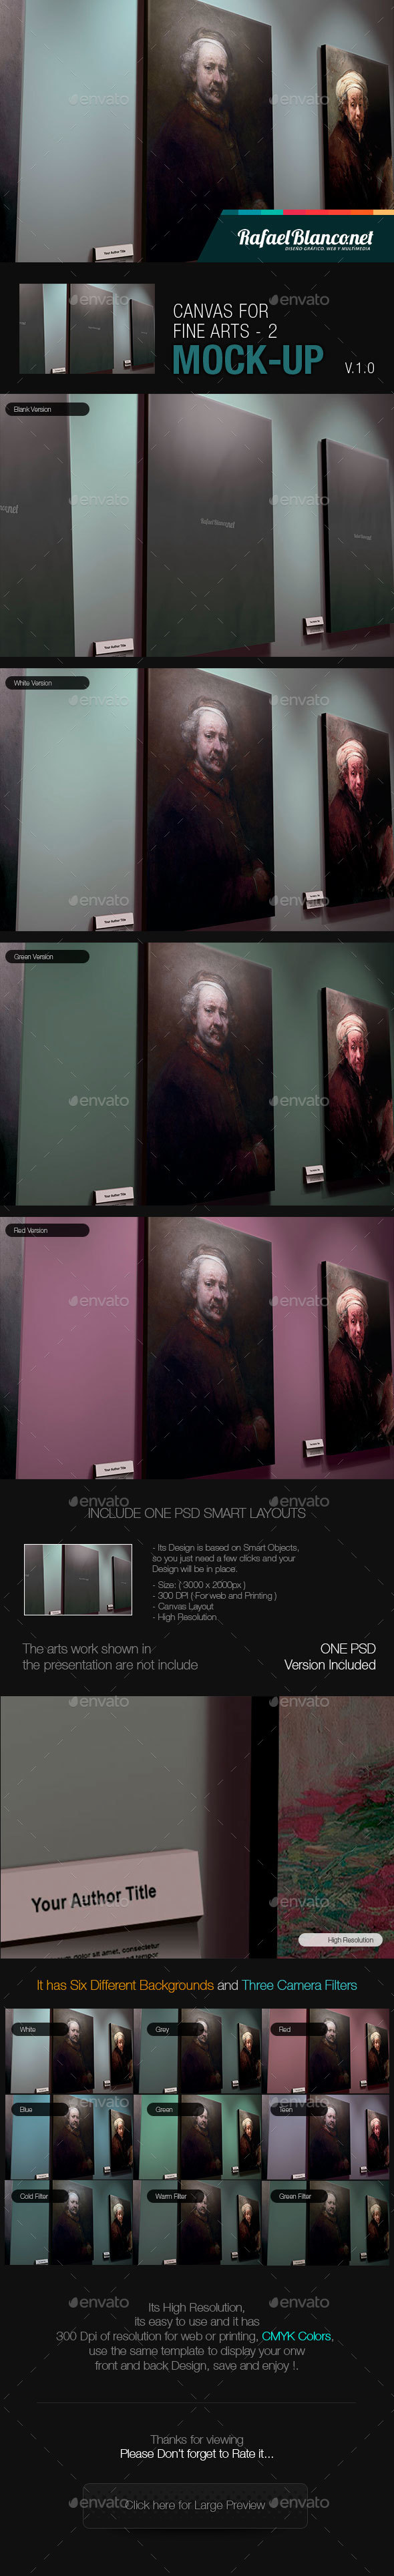 Canvas for Fine Arts Mock-Up 2 - Miscellaneous Displays